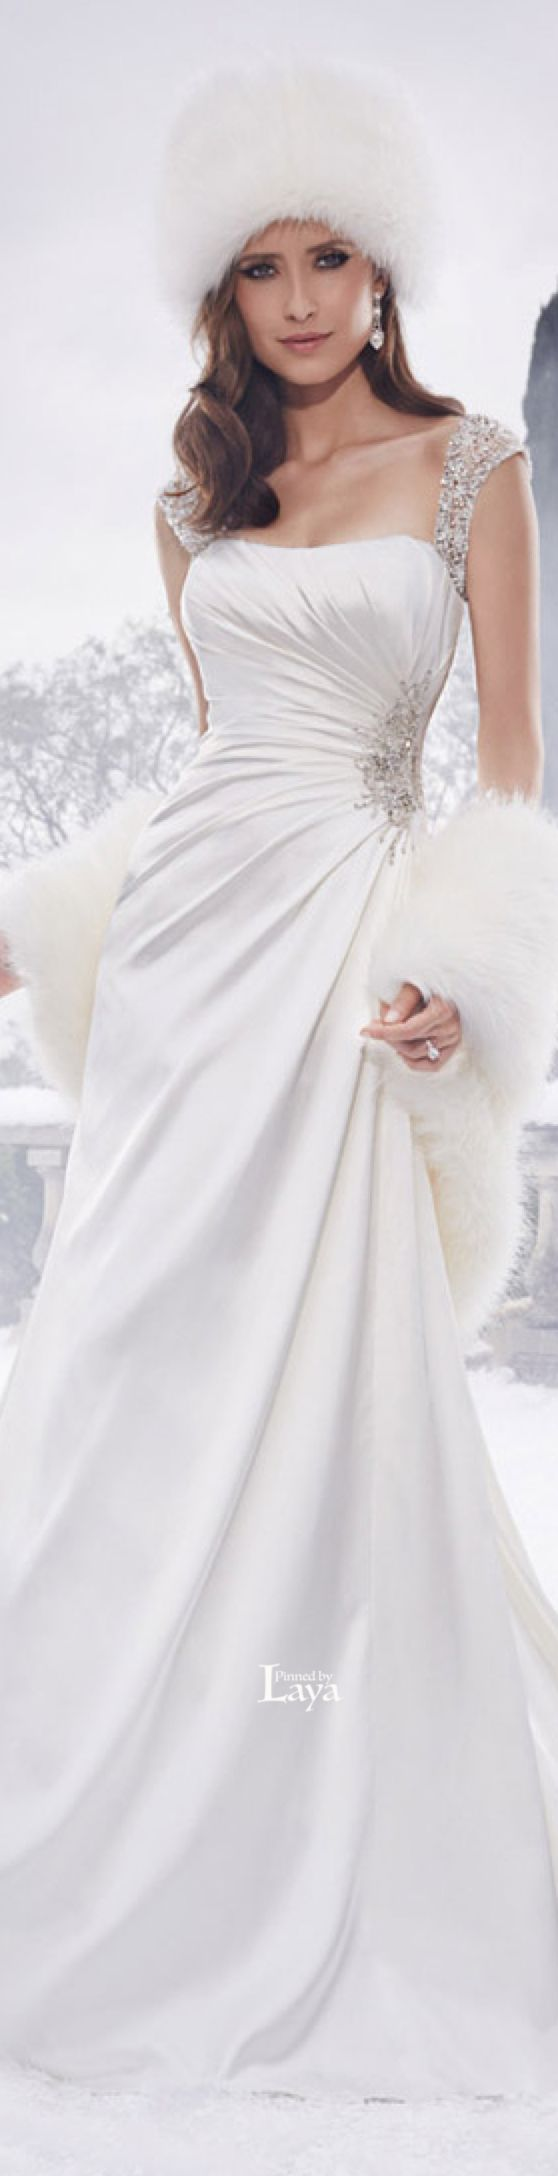 Dress for wedding party in winter   best Weddings Winter images on Pinterest  Winter weddings